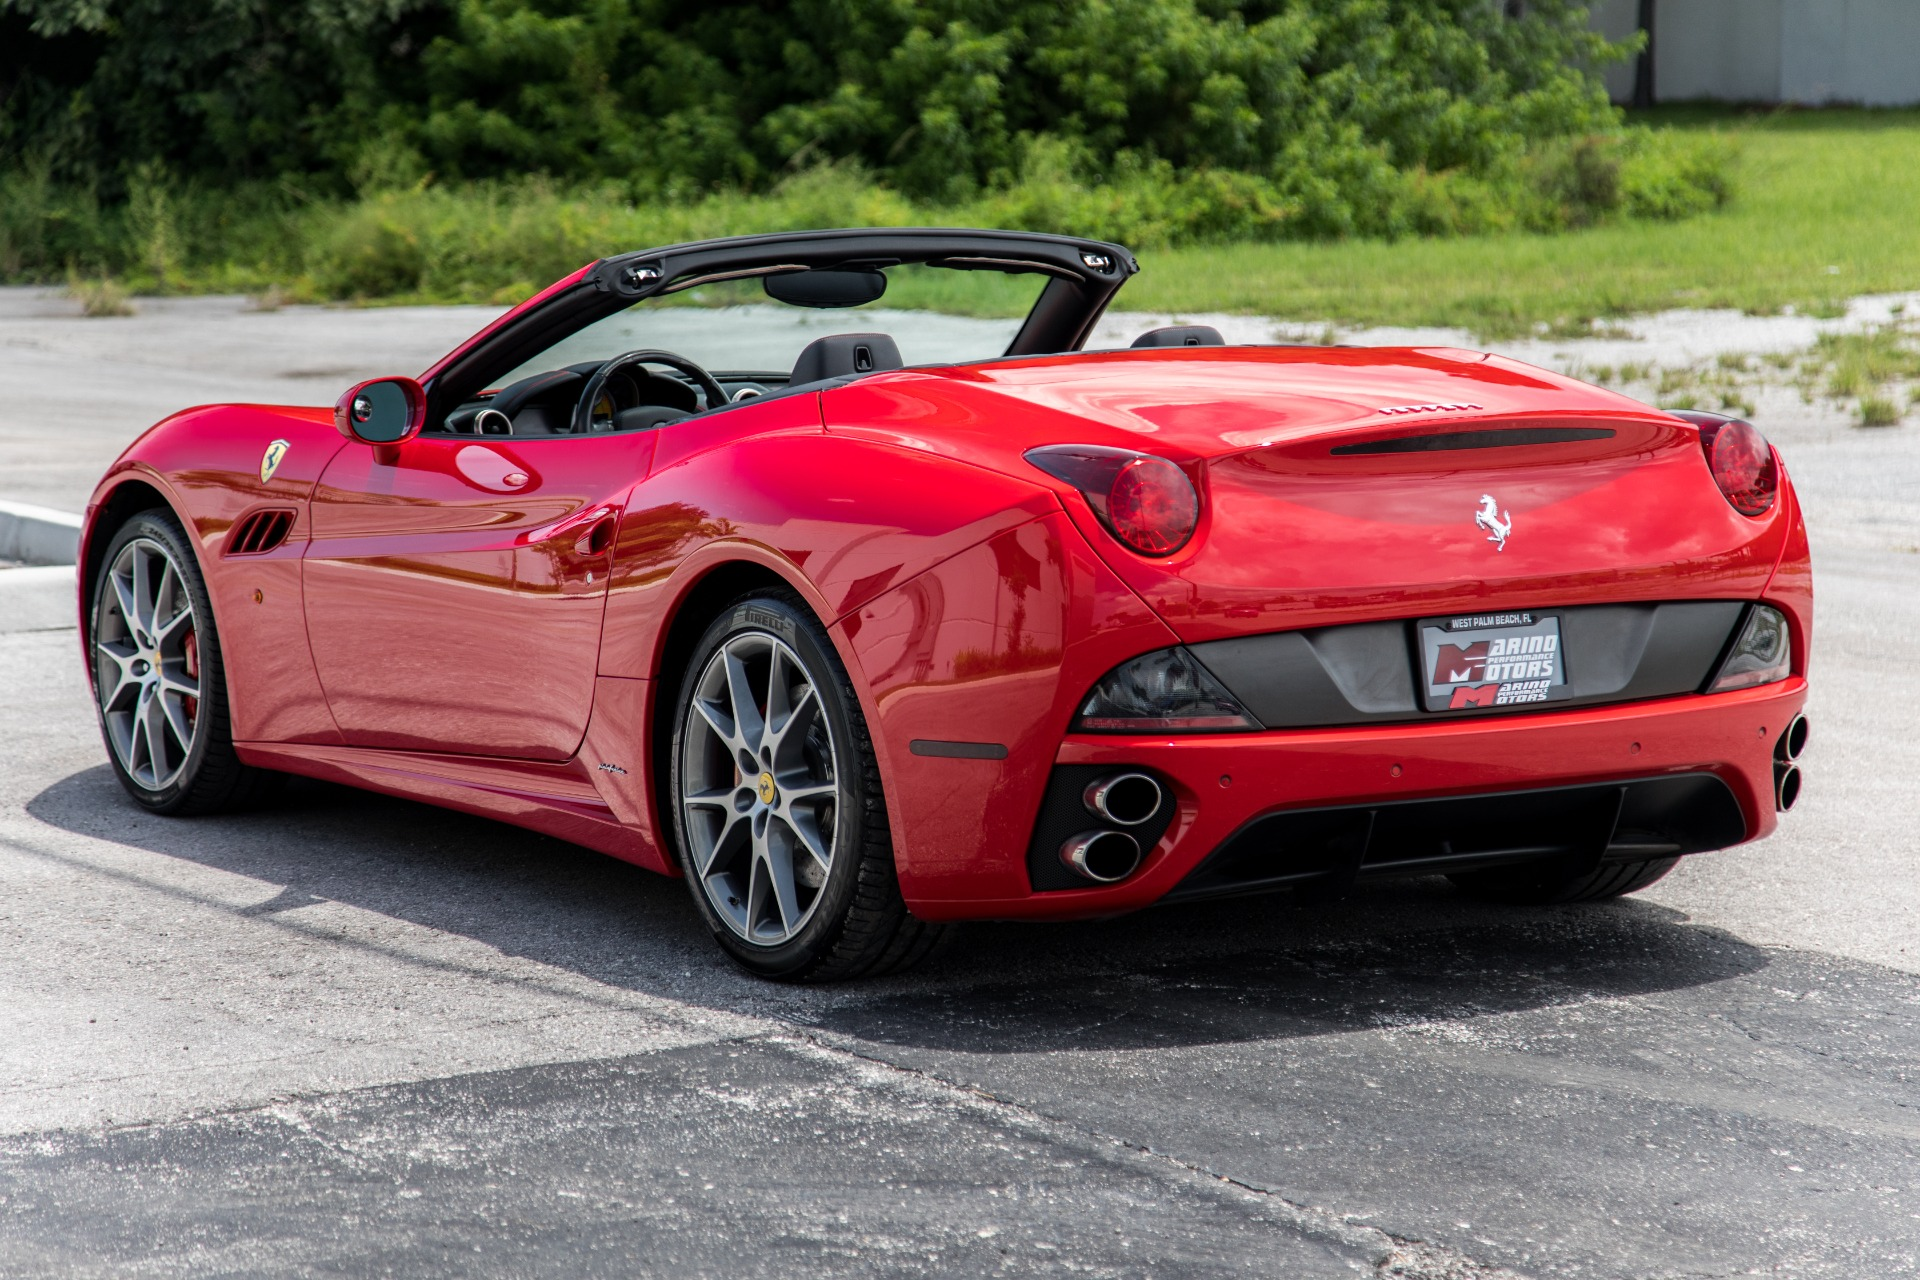 Used 2010 Ferrari California For Sale ($92,900)